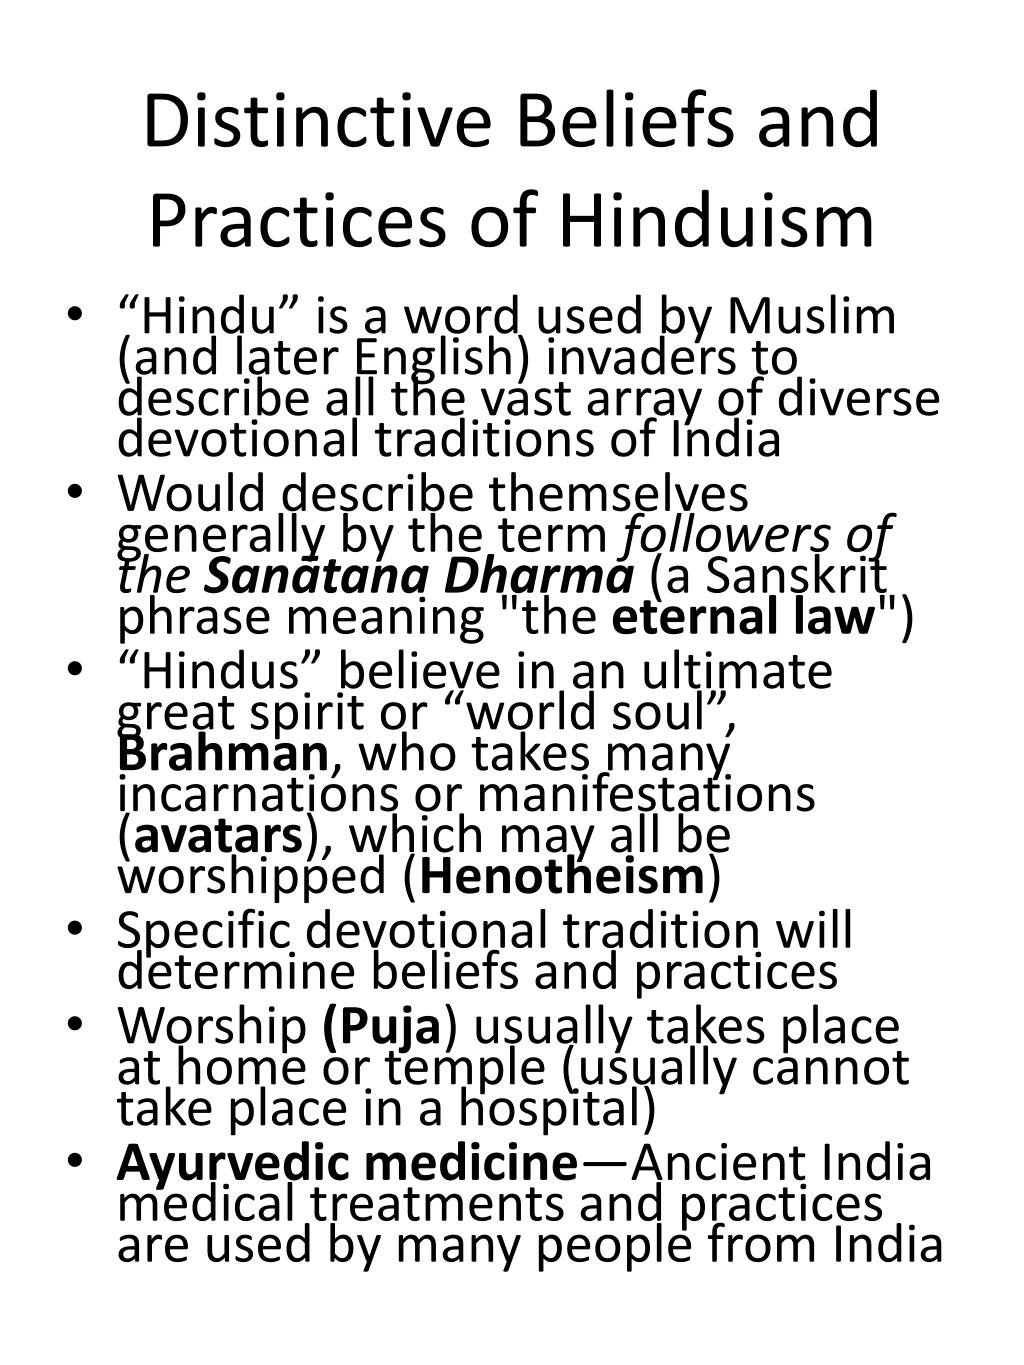 Distinctive Beliefs and Practices of Hinduism